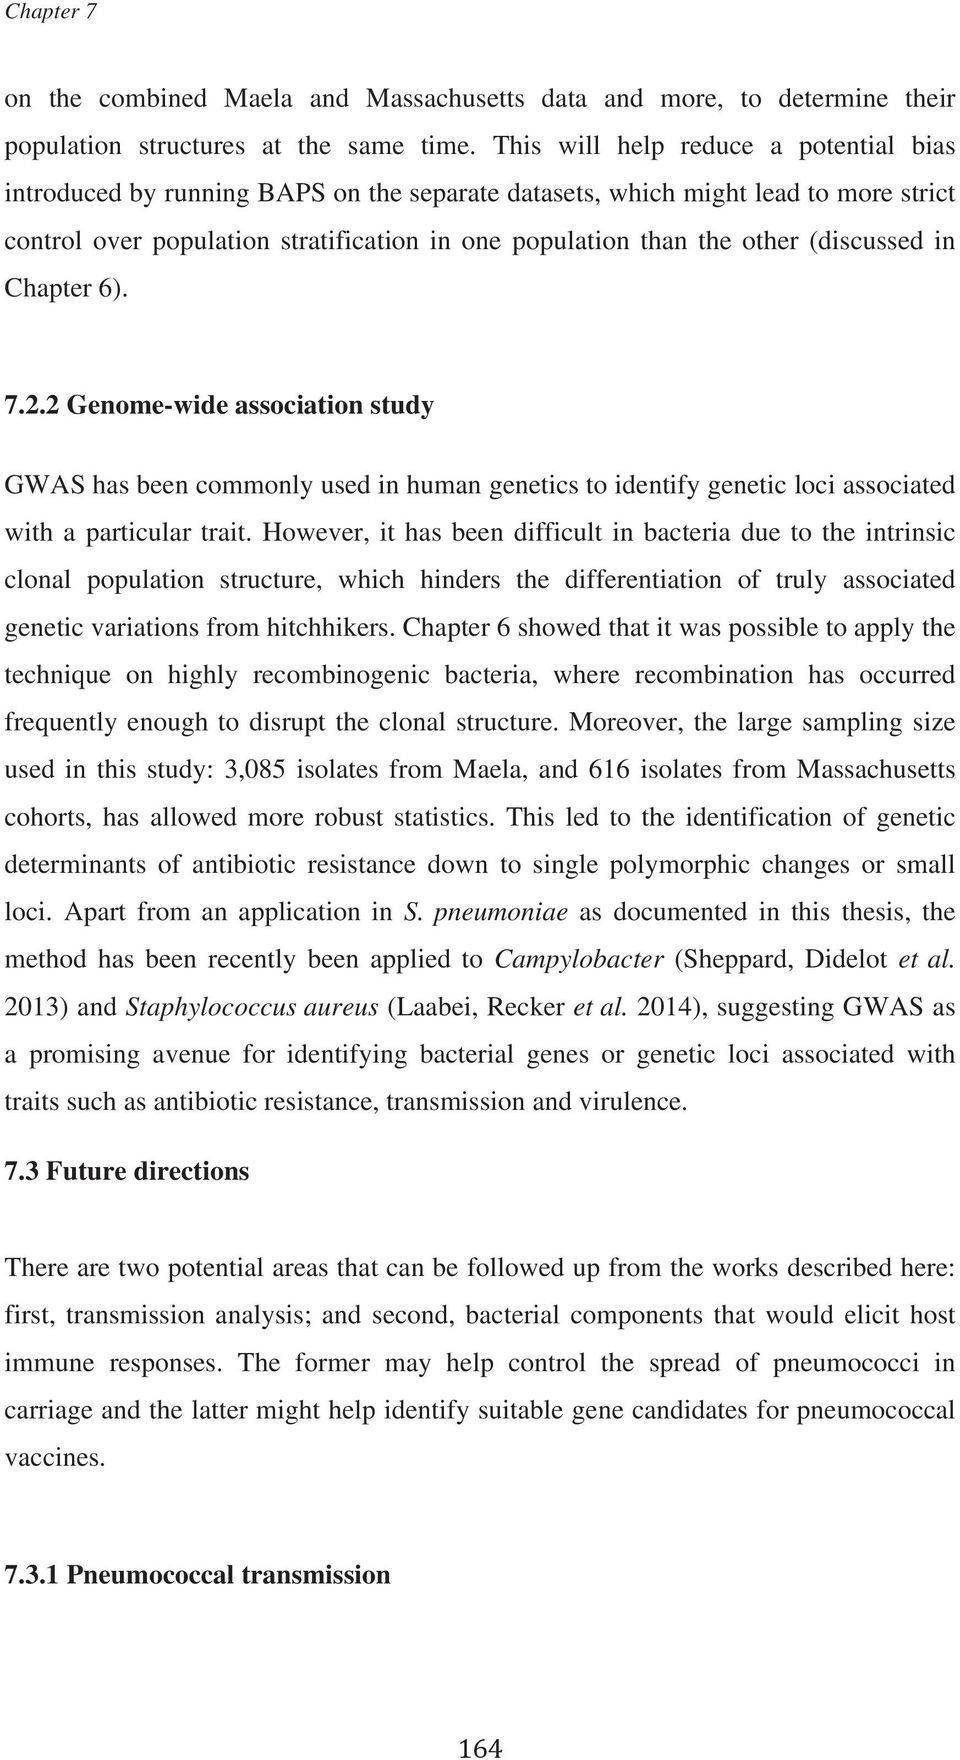 (discussed in Chapter 6). 7.2.2 Genome-wide association study GWAS has been commonly used in human genetics to identify genetic loci associated with a particular trait.